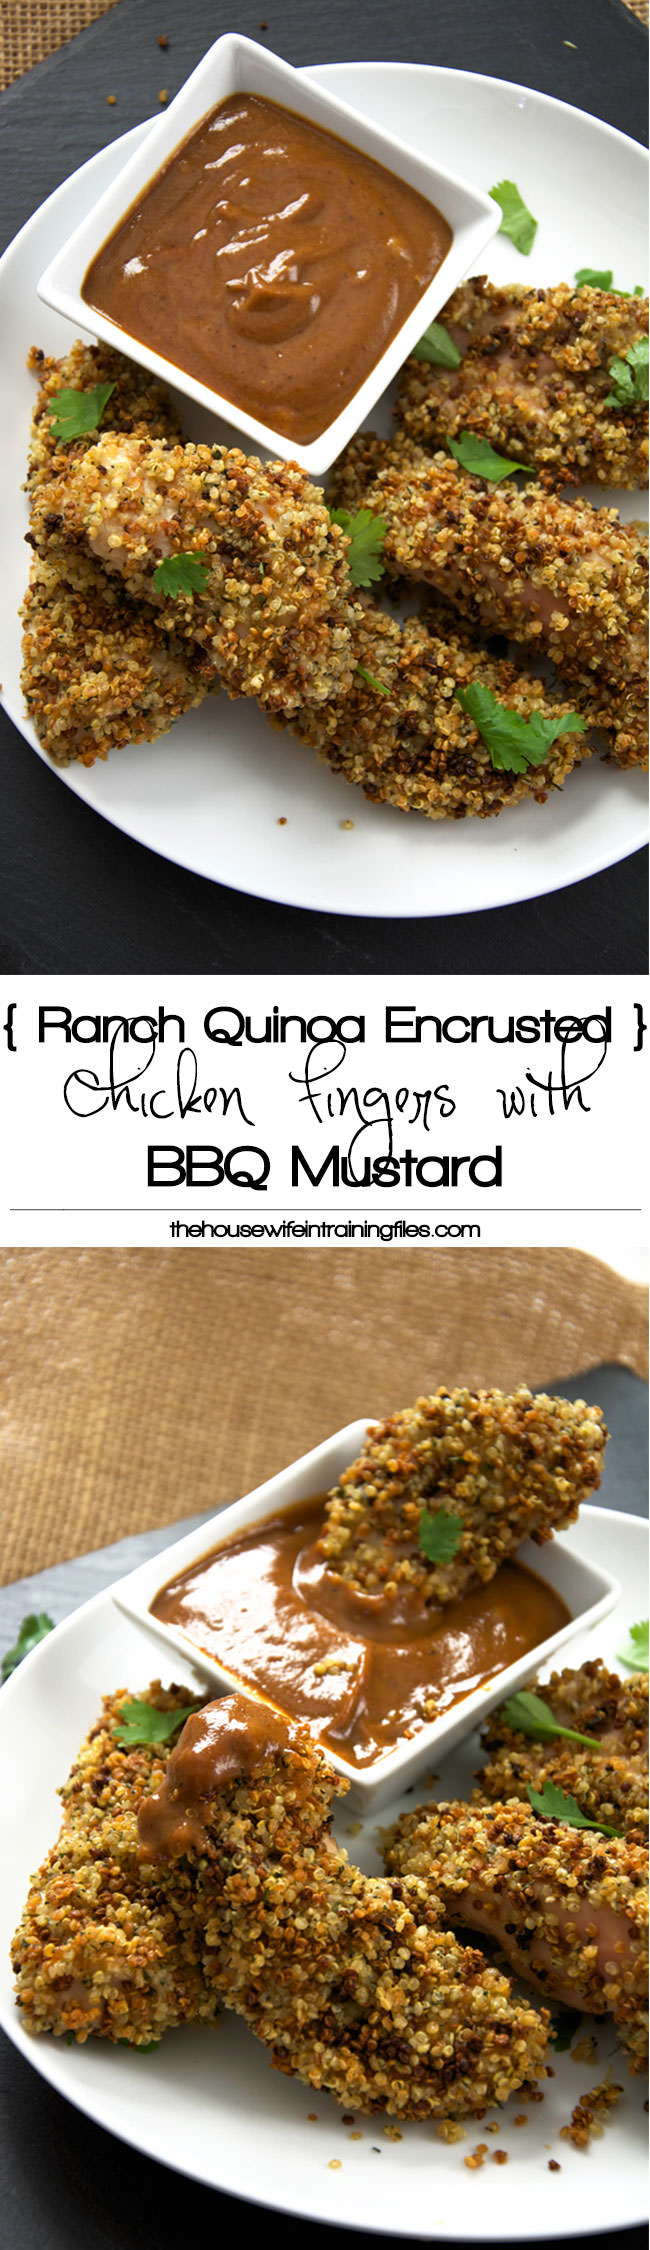 Chicken Fingers made over by encrusting in ranch seasoned quinoa for major crunch! And served with a two ingredient sauce of BBQ and mustard make for one delicious dinner! #glutenfree #chickenstrips #BBQ #dinner